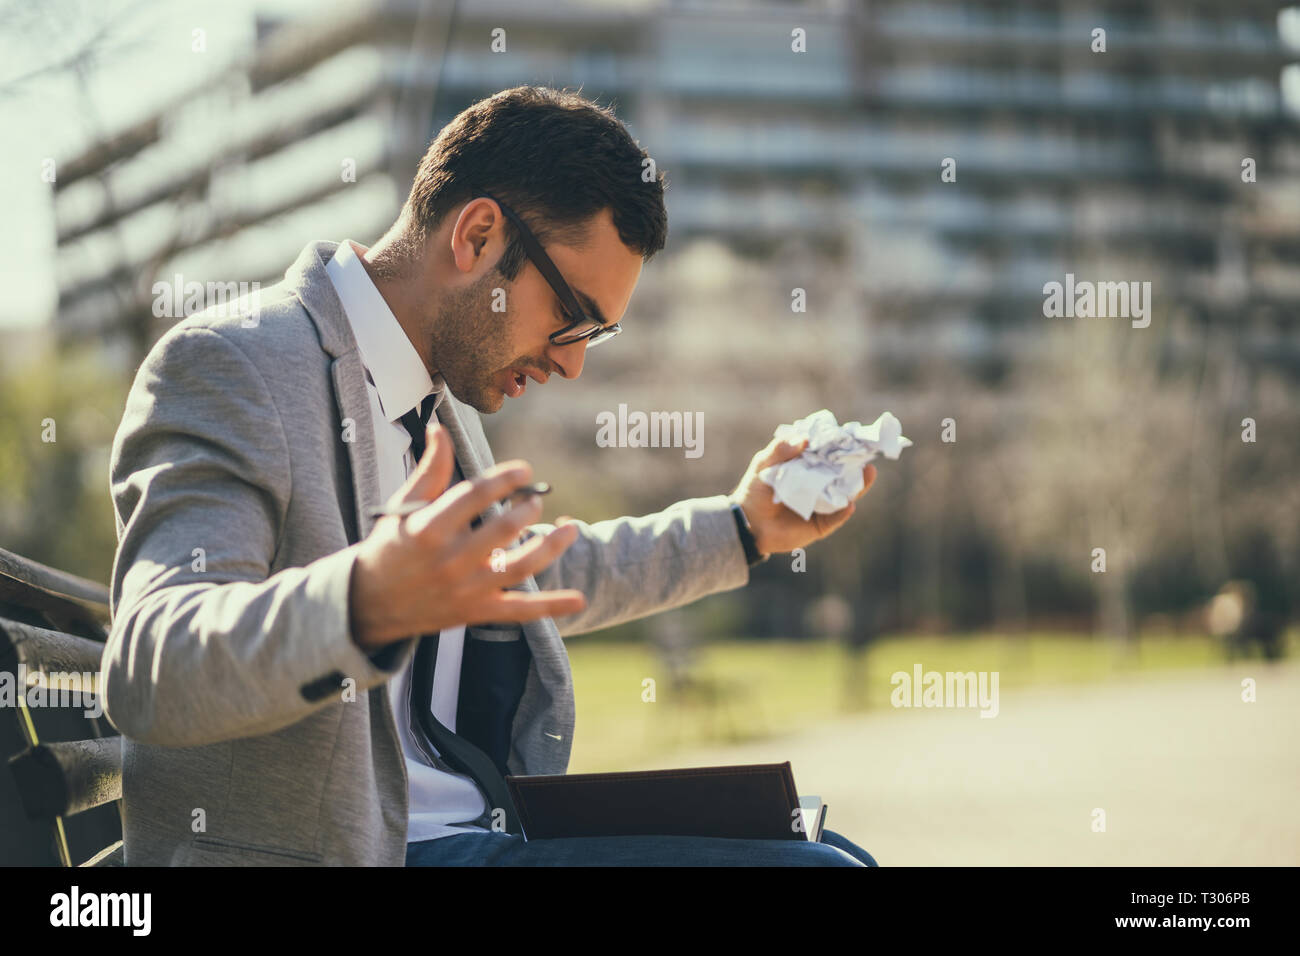 Young businessman is angry and overworked. - Stock Image